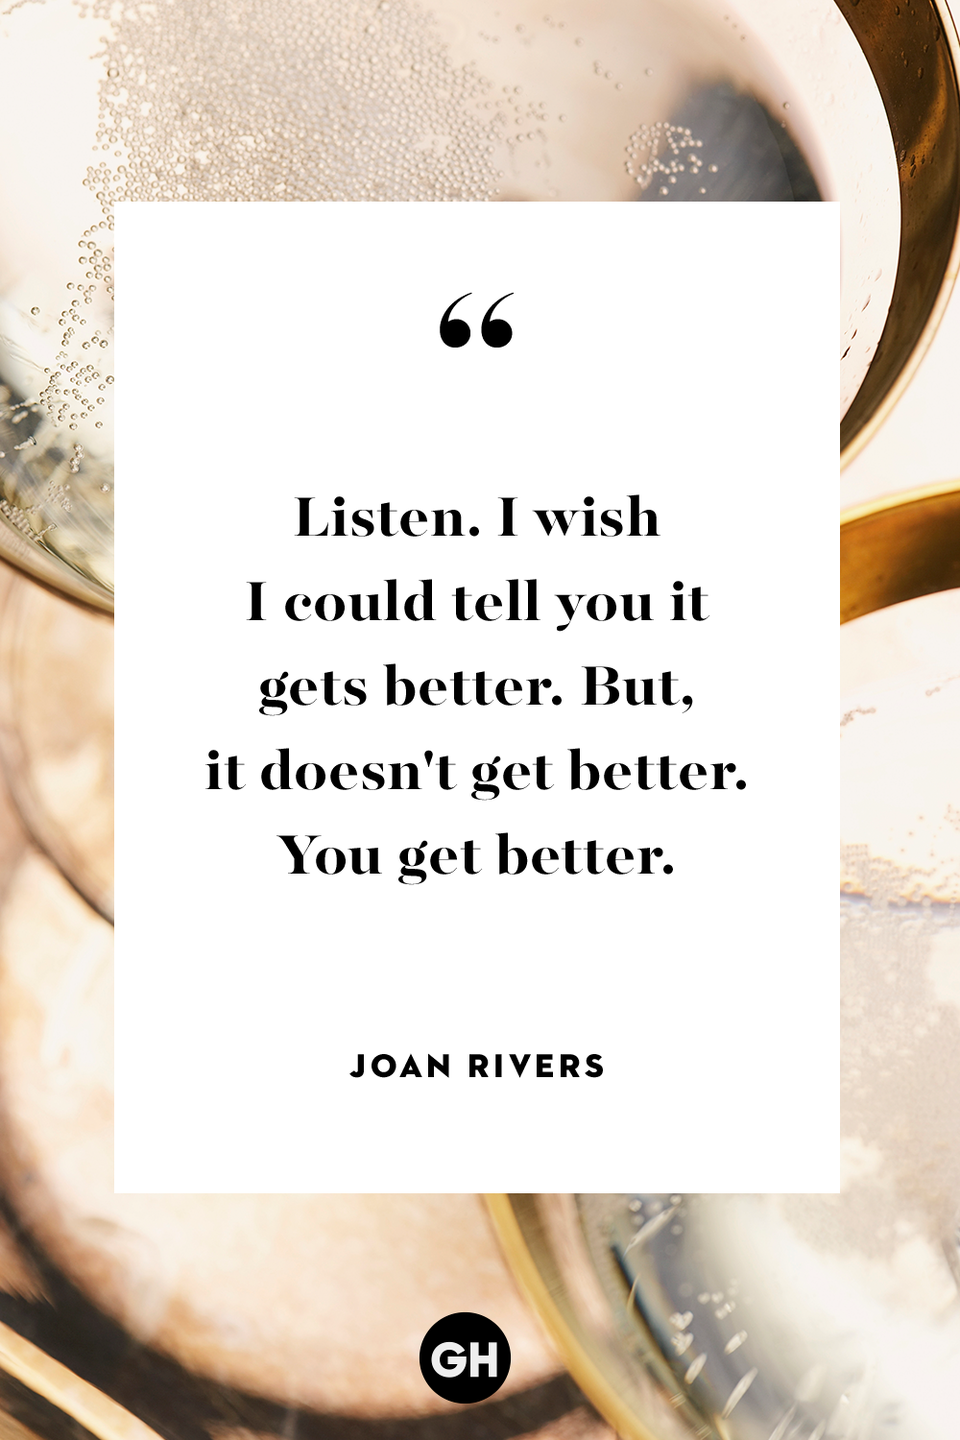 <p>Listen. I wish I could tell you it gets better. But, it doesn't get better. You get better.</p>